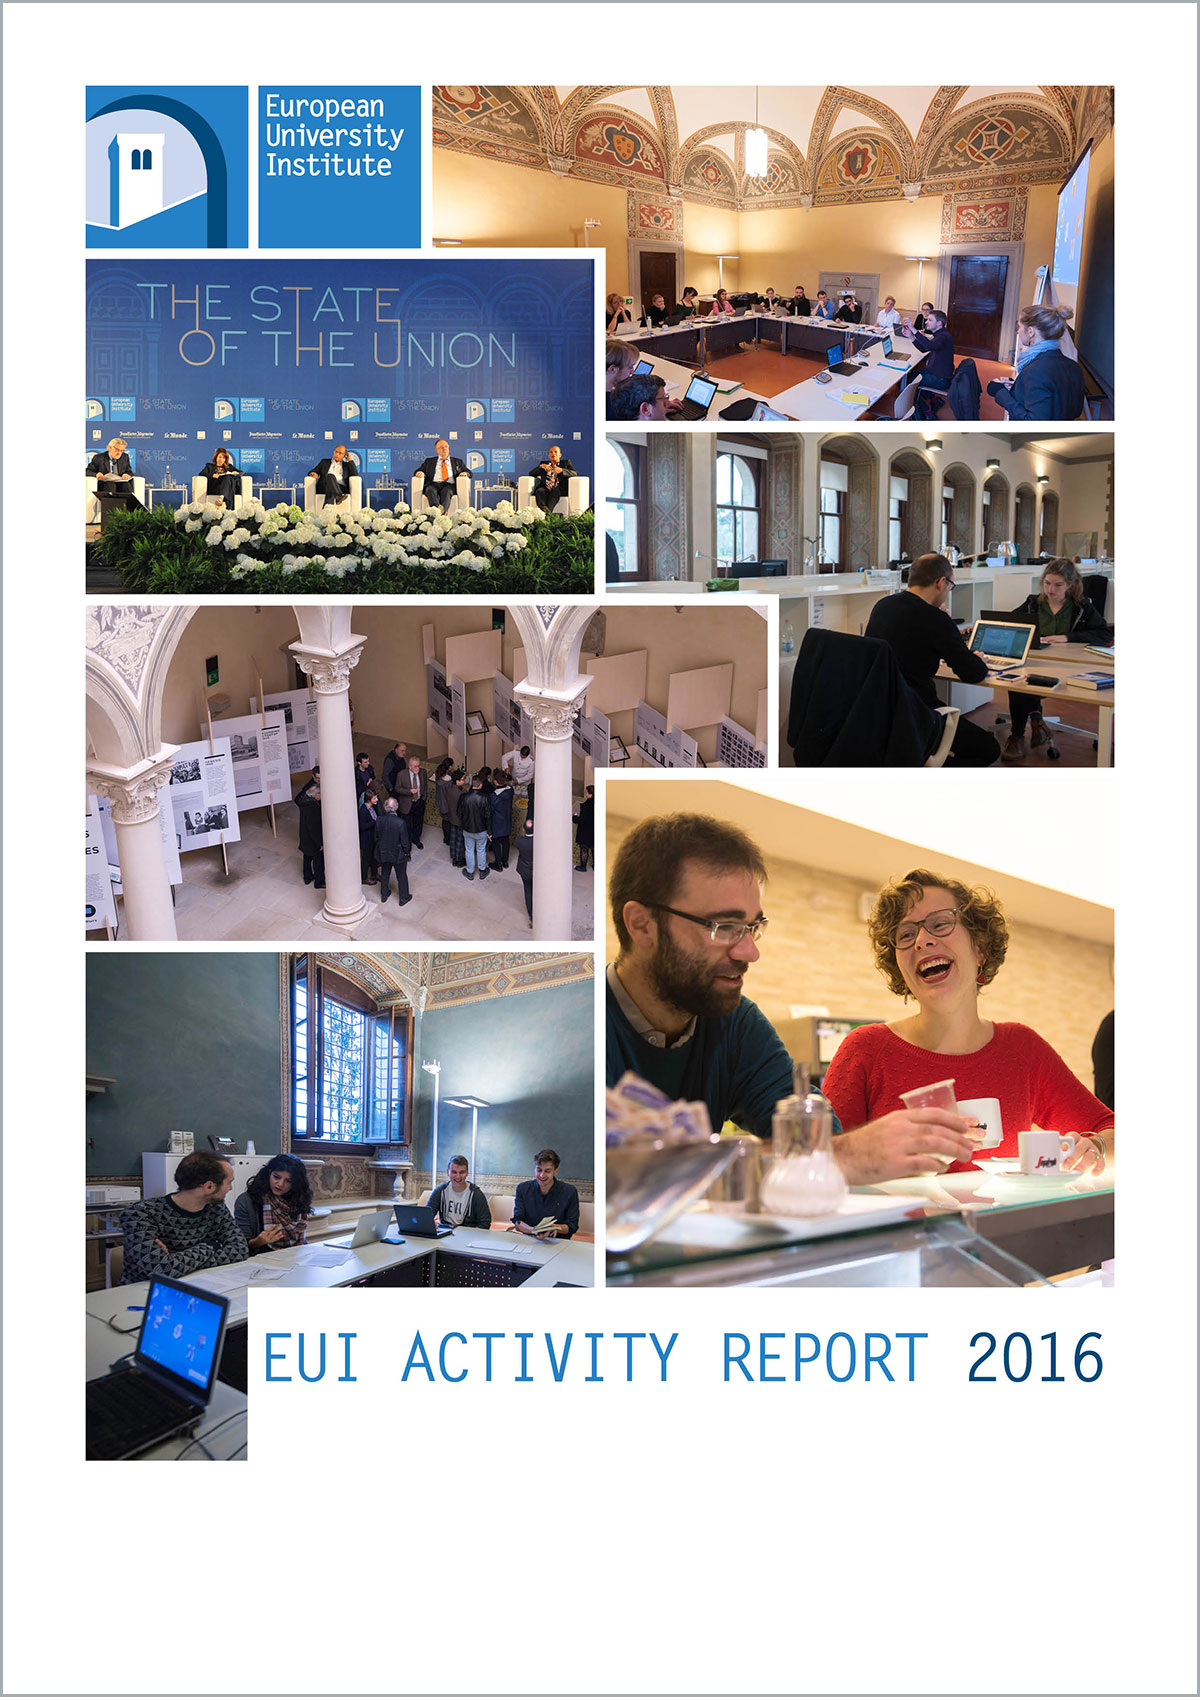 Activity-Report-2016-image